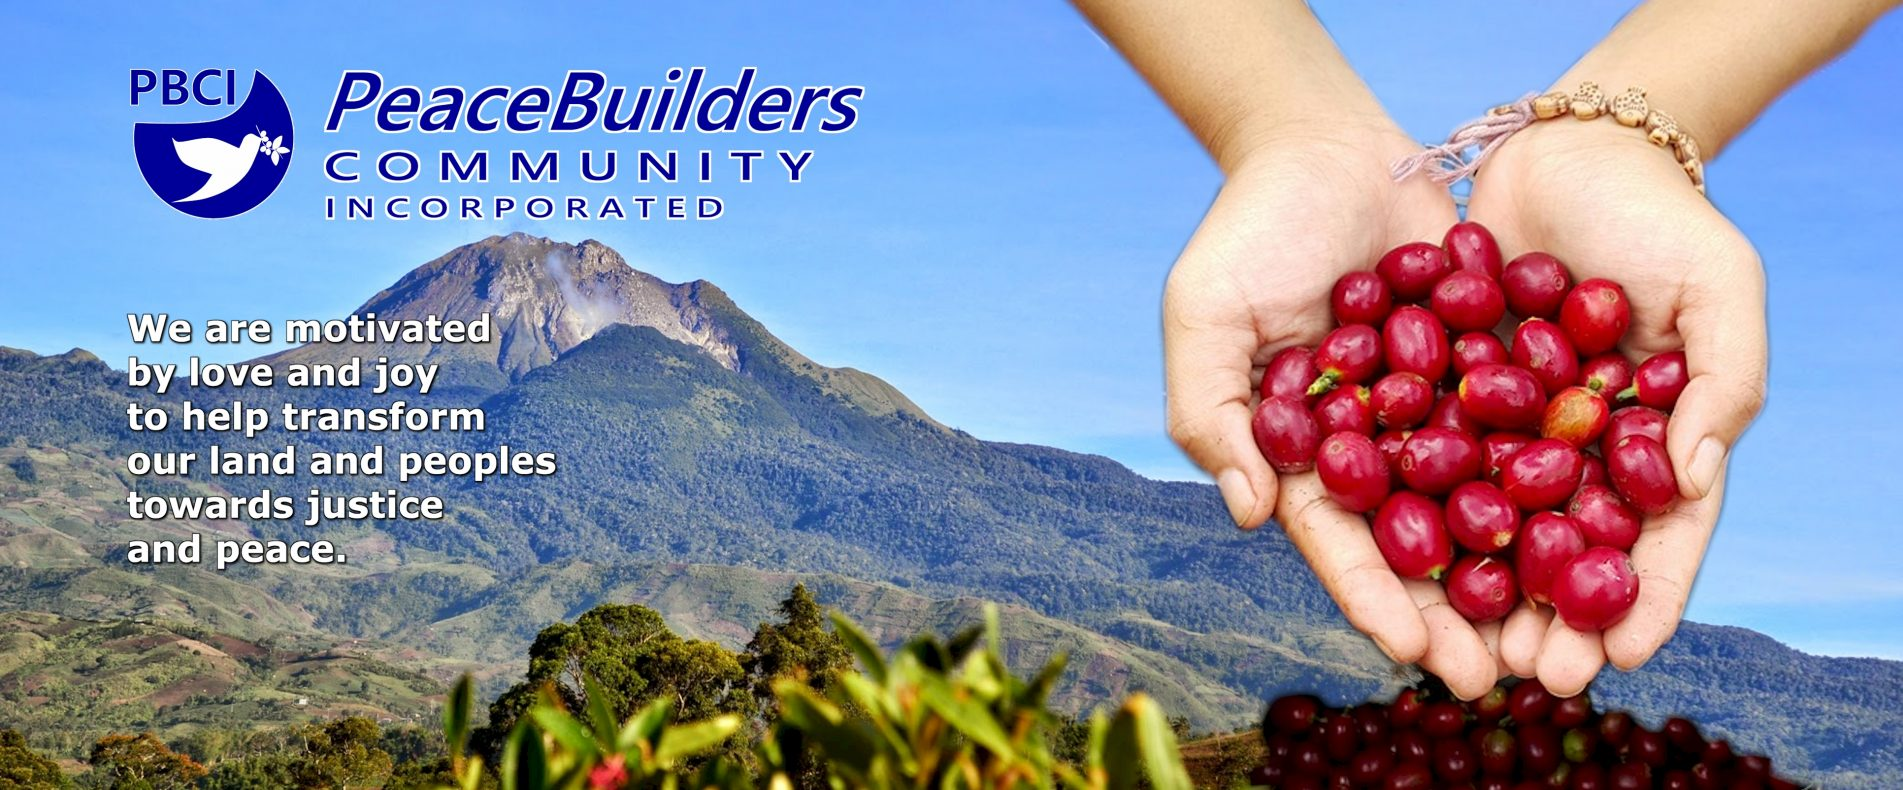 PeaceBuilders Community, Inc.